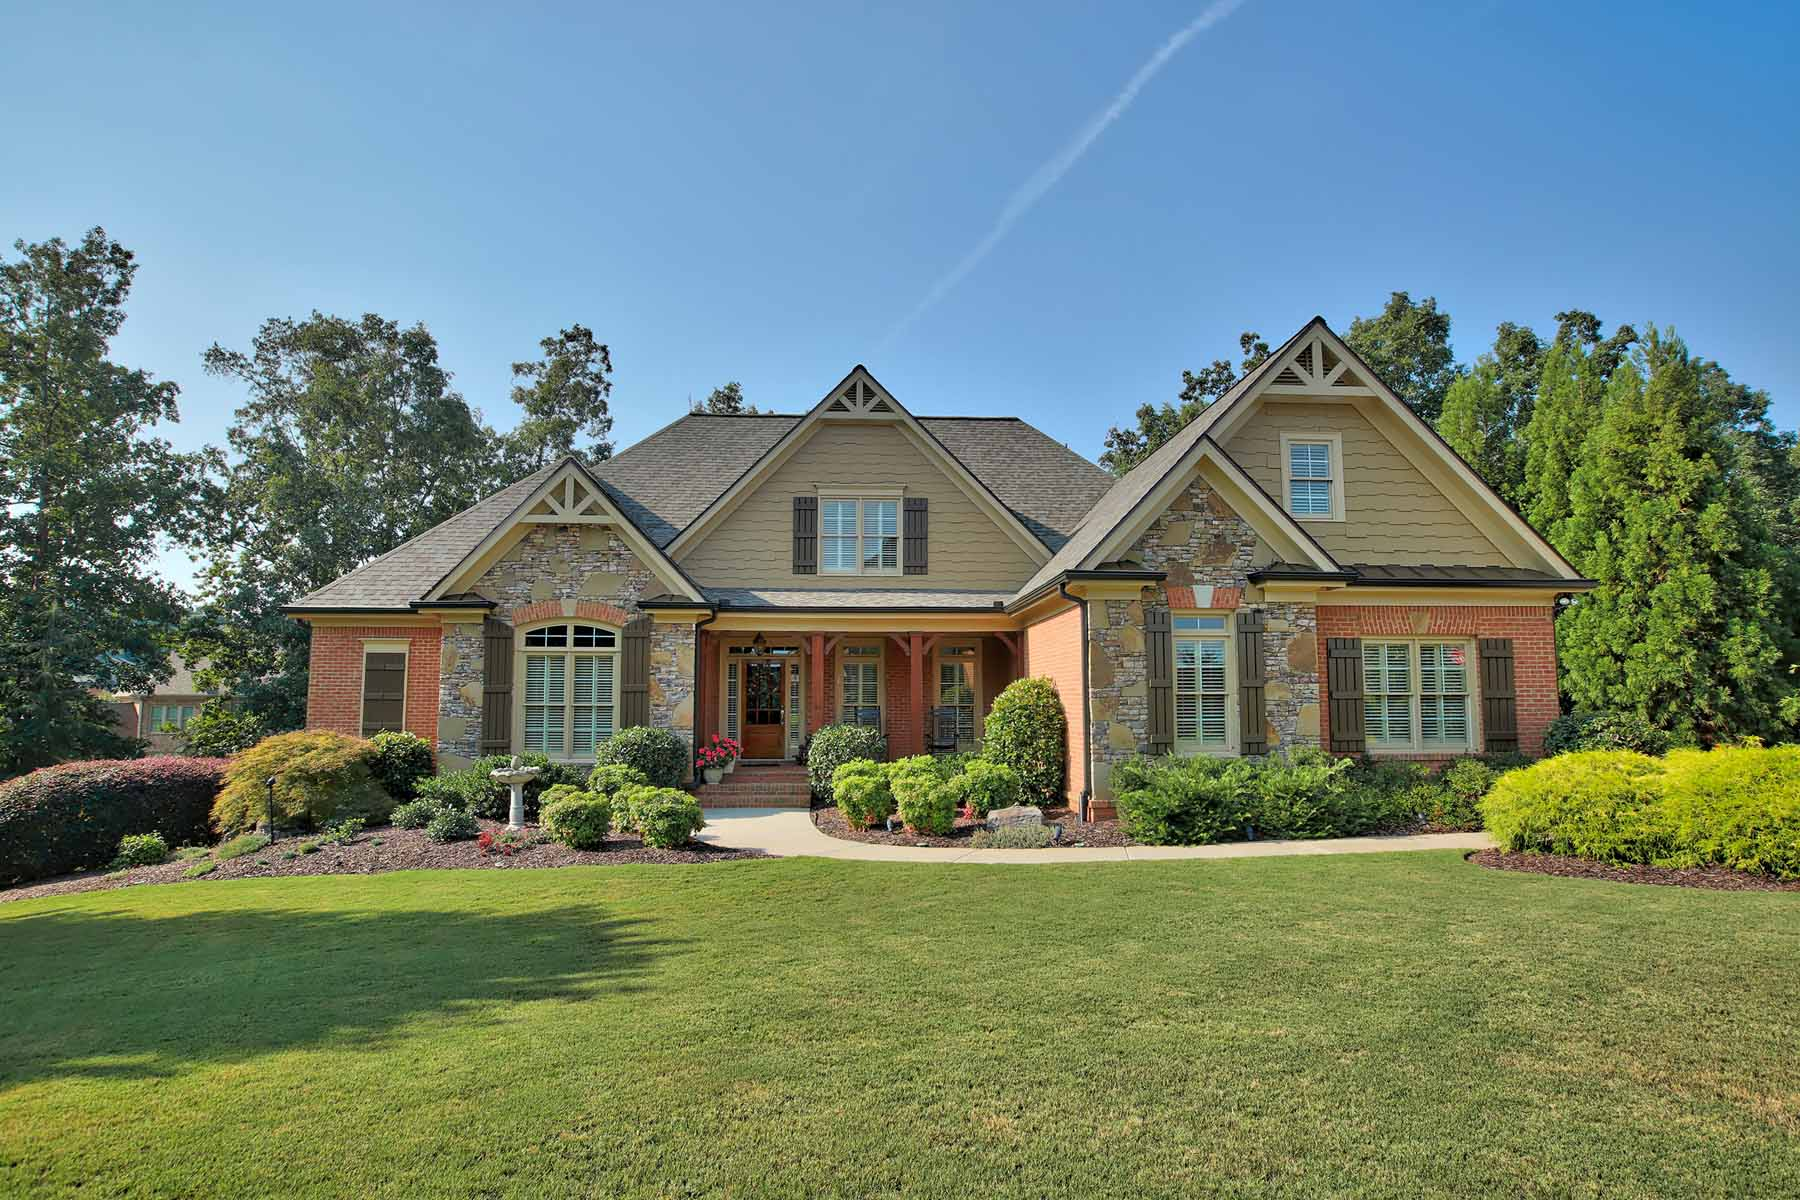 Villa per Vendita alle ore Custom Built Home on Beautiful Lot 5845 Boulder Bluff Drive Cumming, Georgia, 30040 Stati Uniti